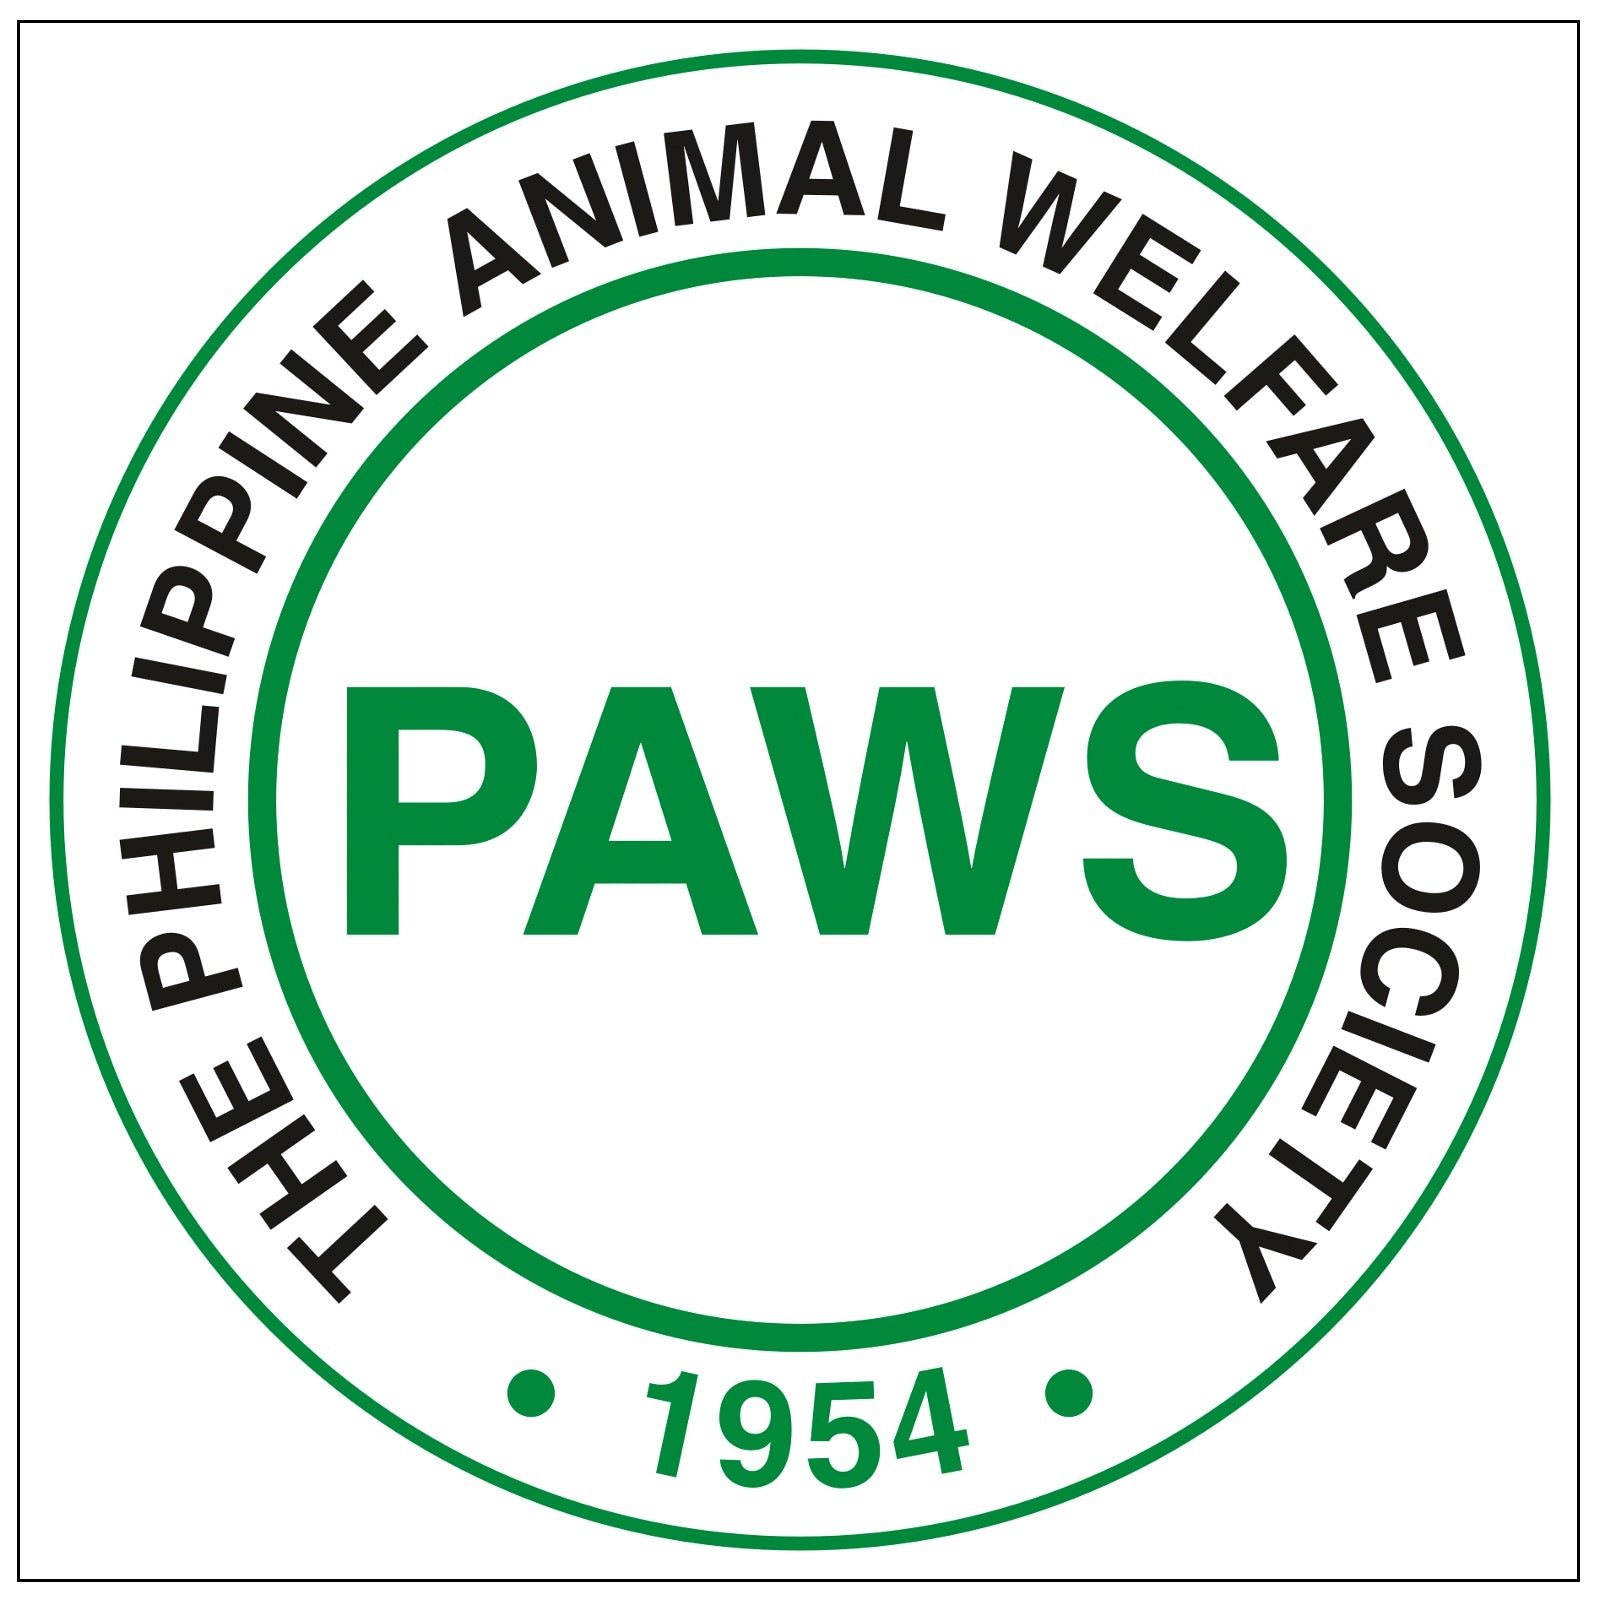 PHILIPPINE ANIMAL WELFARE SOCIETY for Typhoon relief